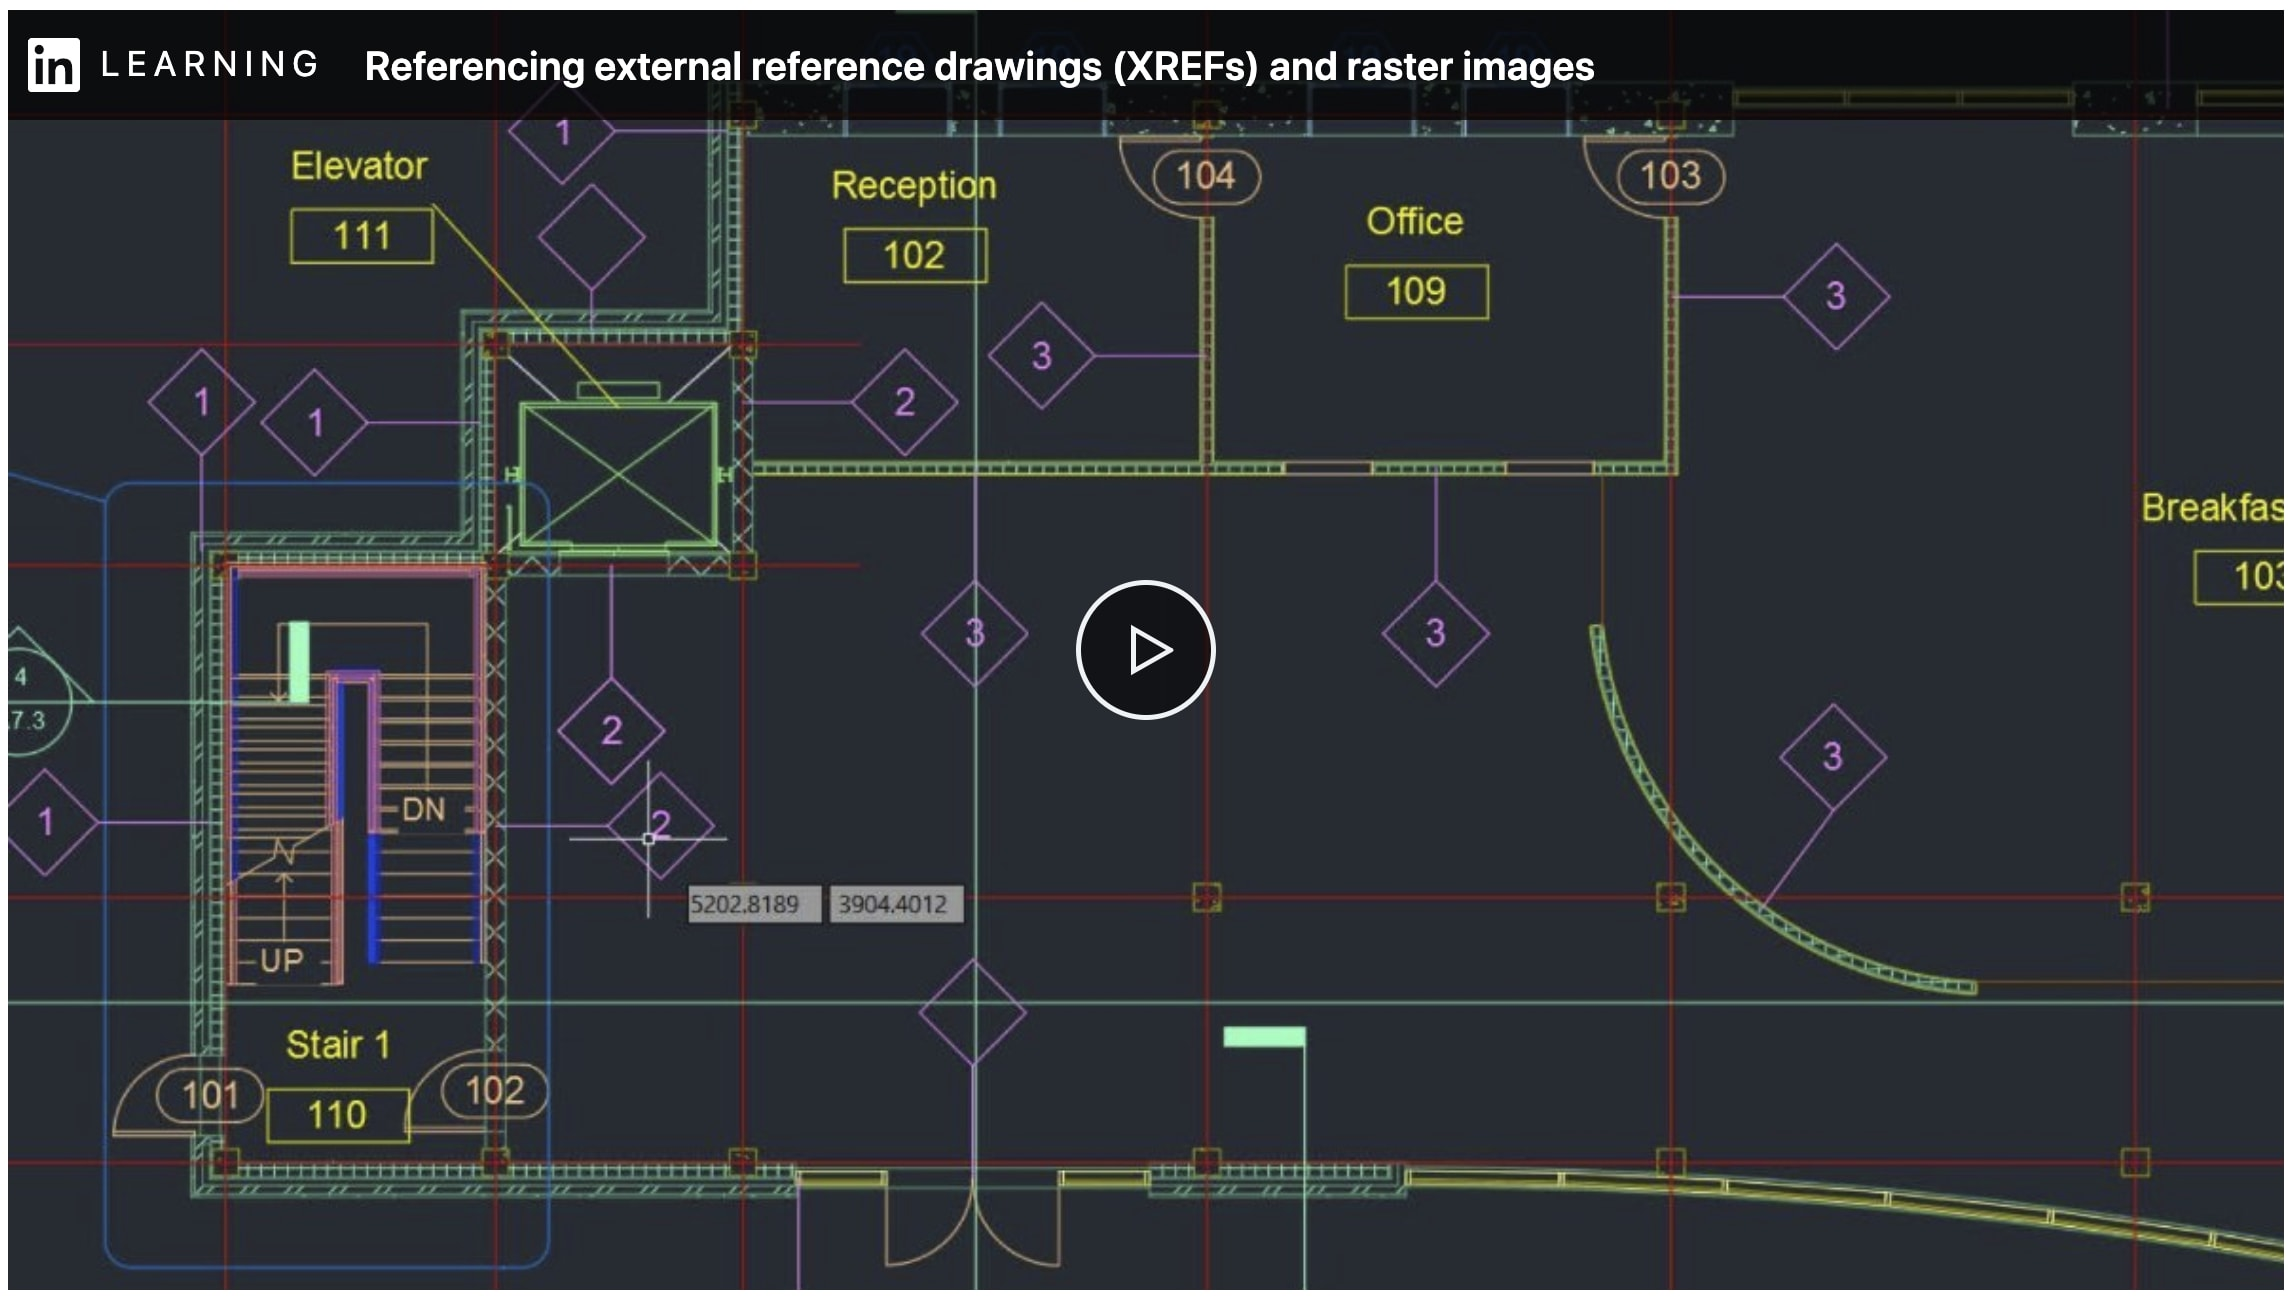 Referencing XREFs and raster images in AutoCAD